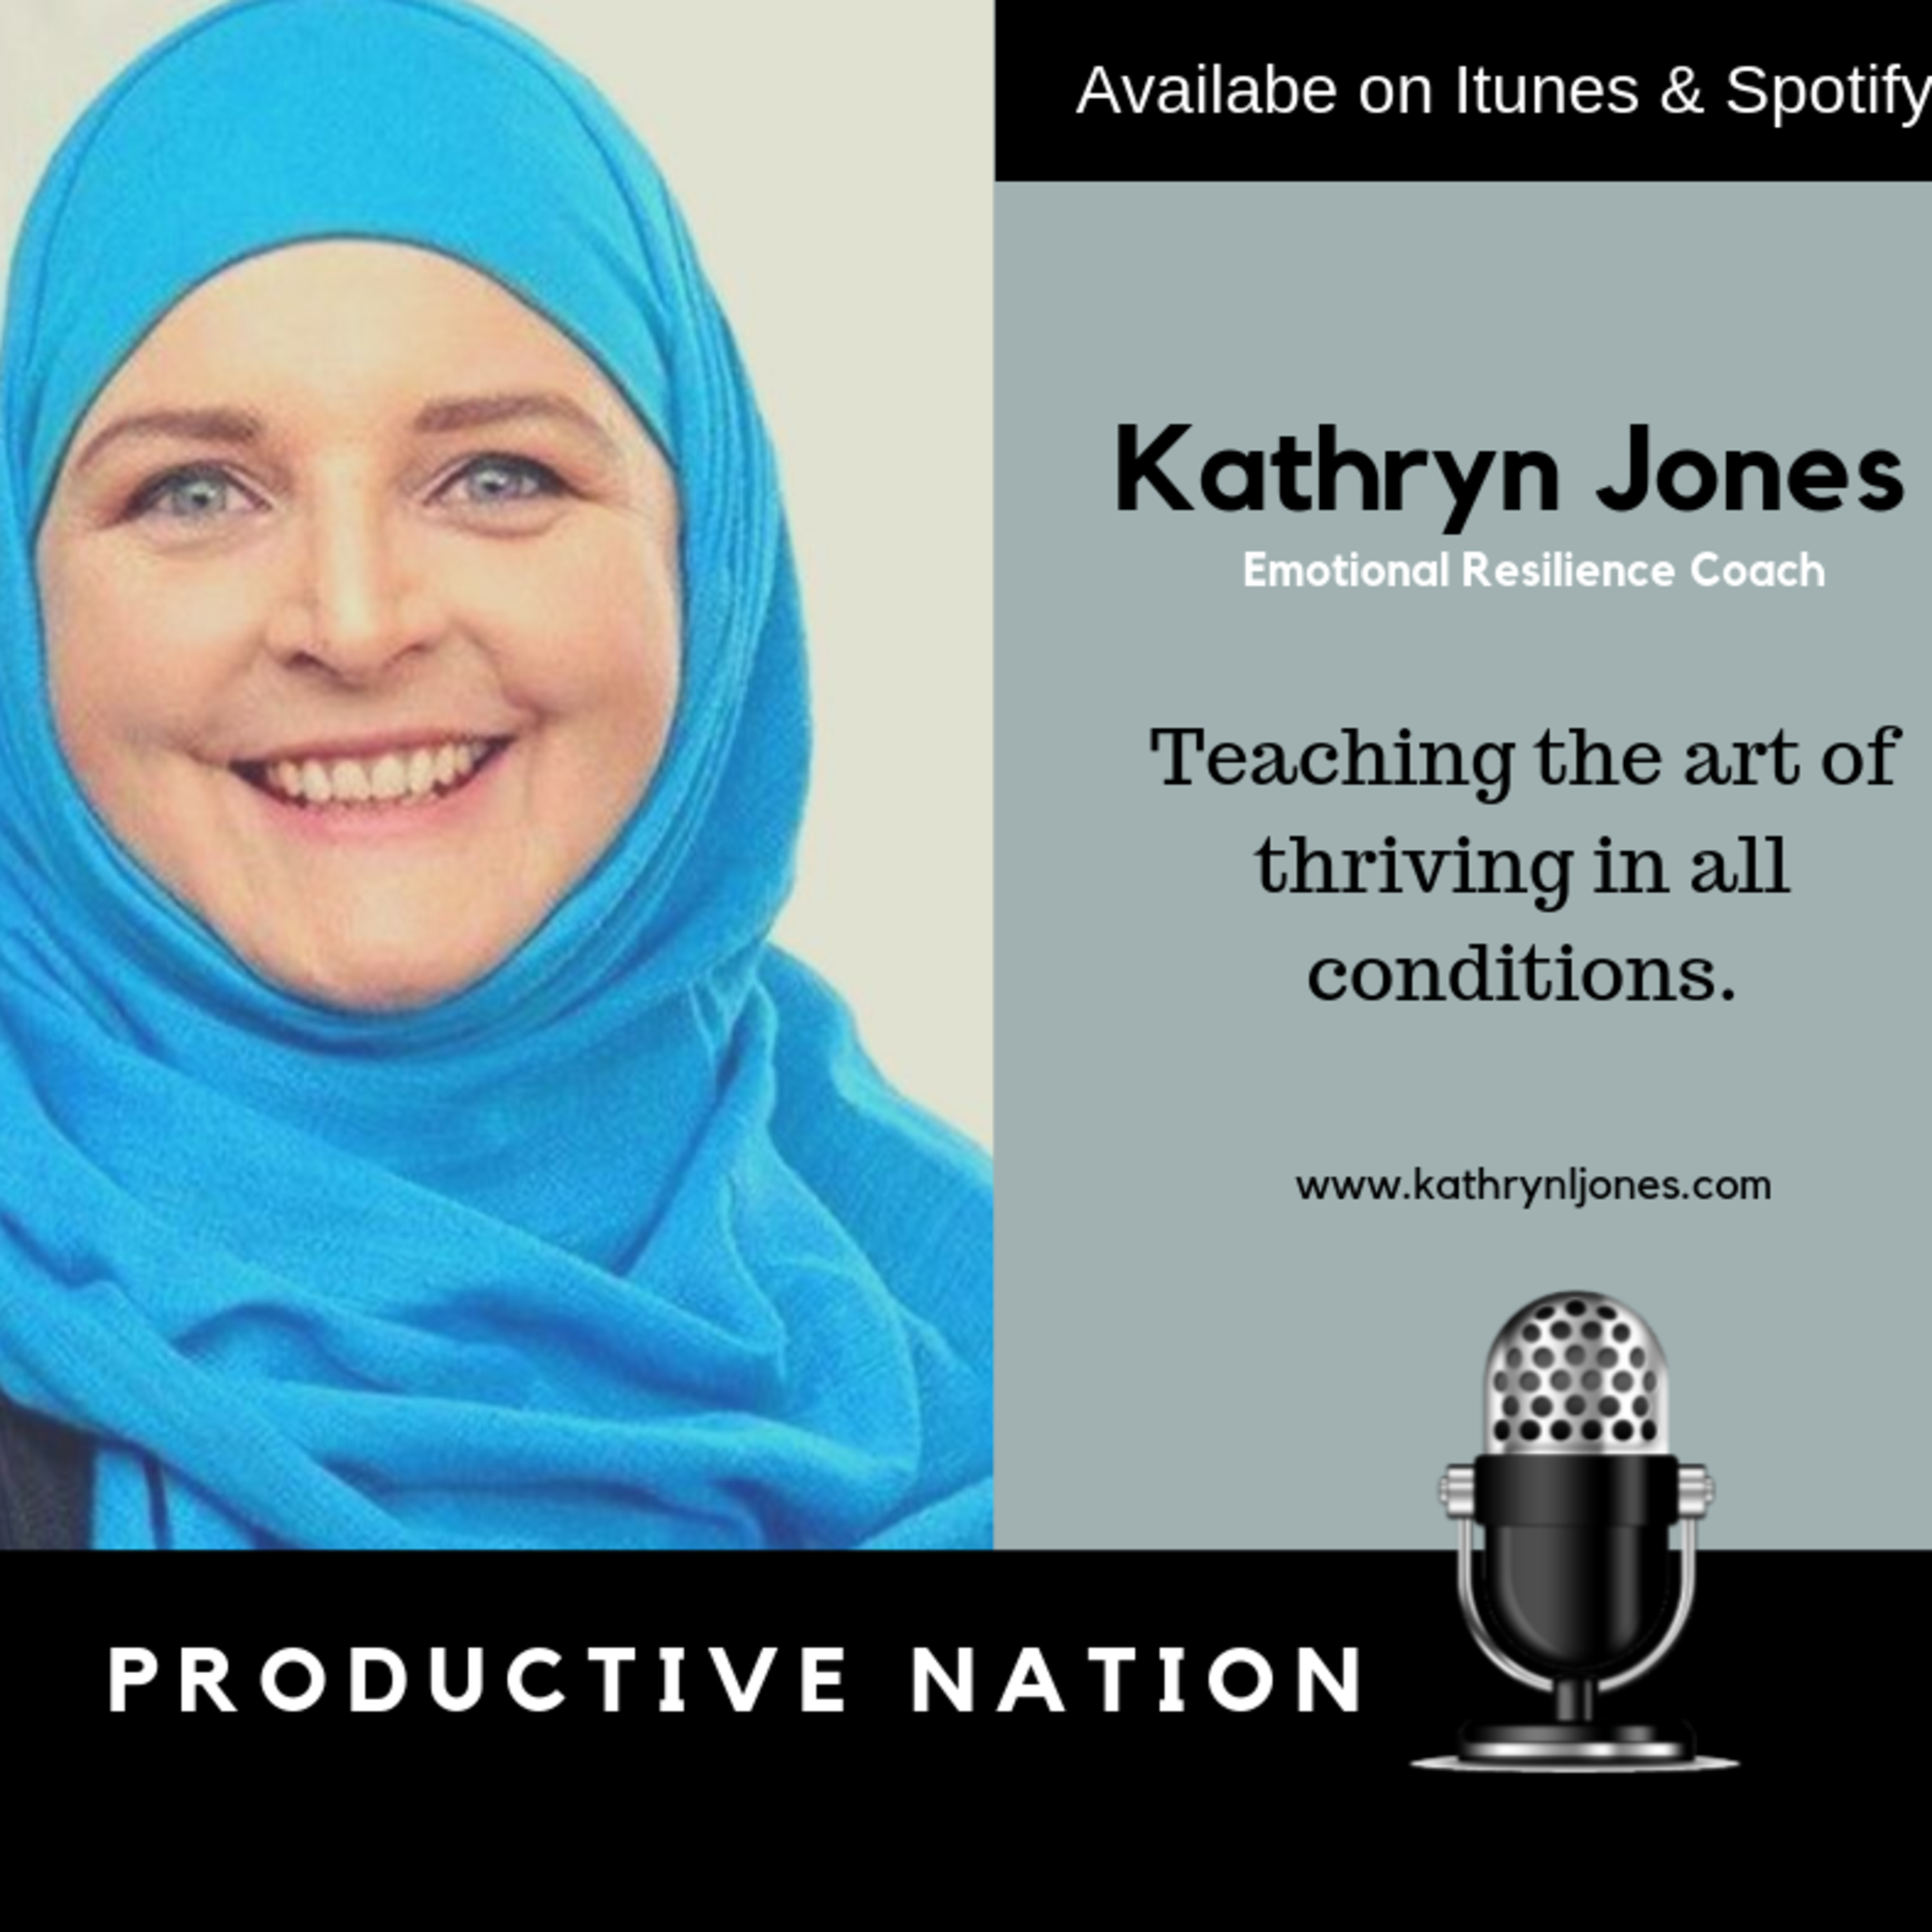 Teaching the art of thriving in all conditions - Kathryn Jones